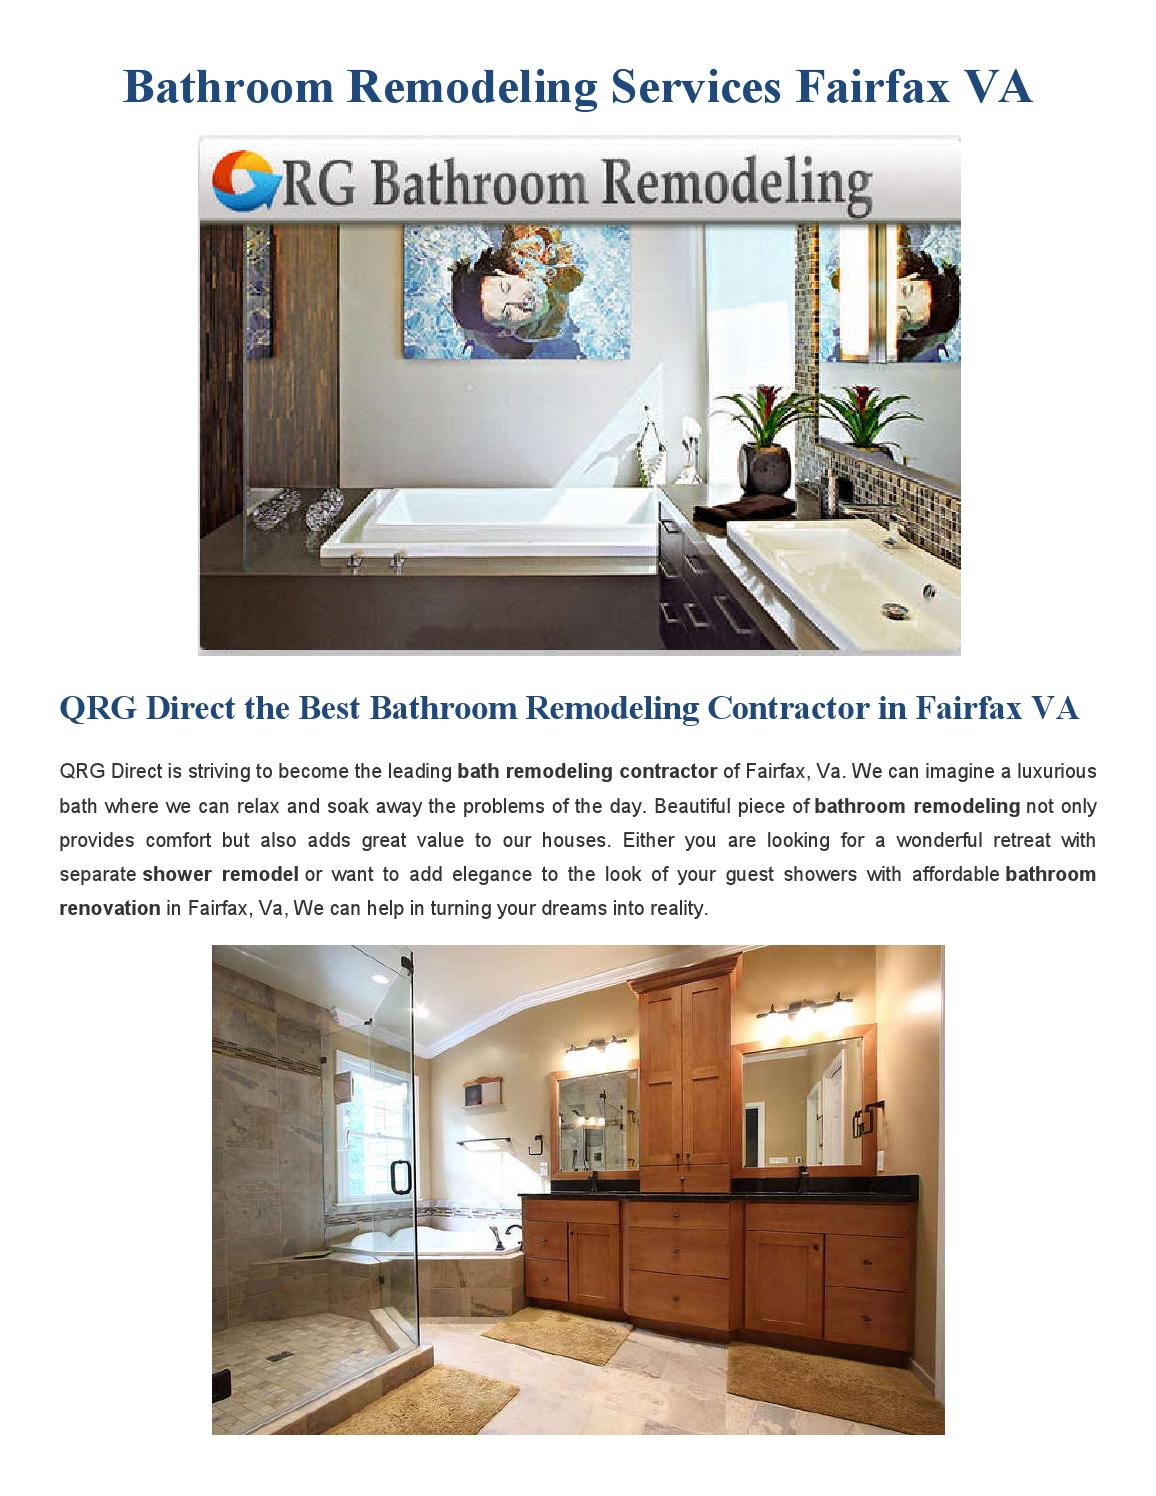 Bathroom Remodeling Fairfax Va By QRG Business Services